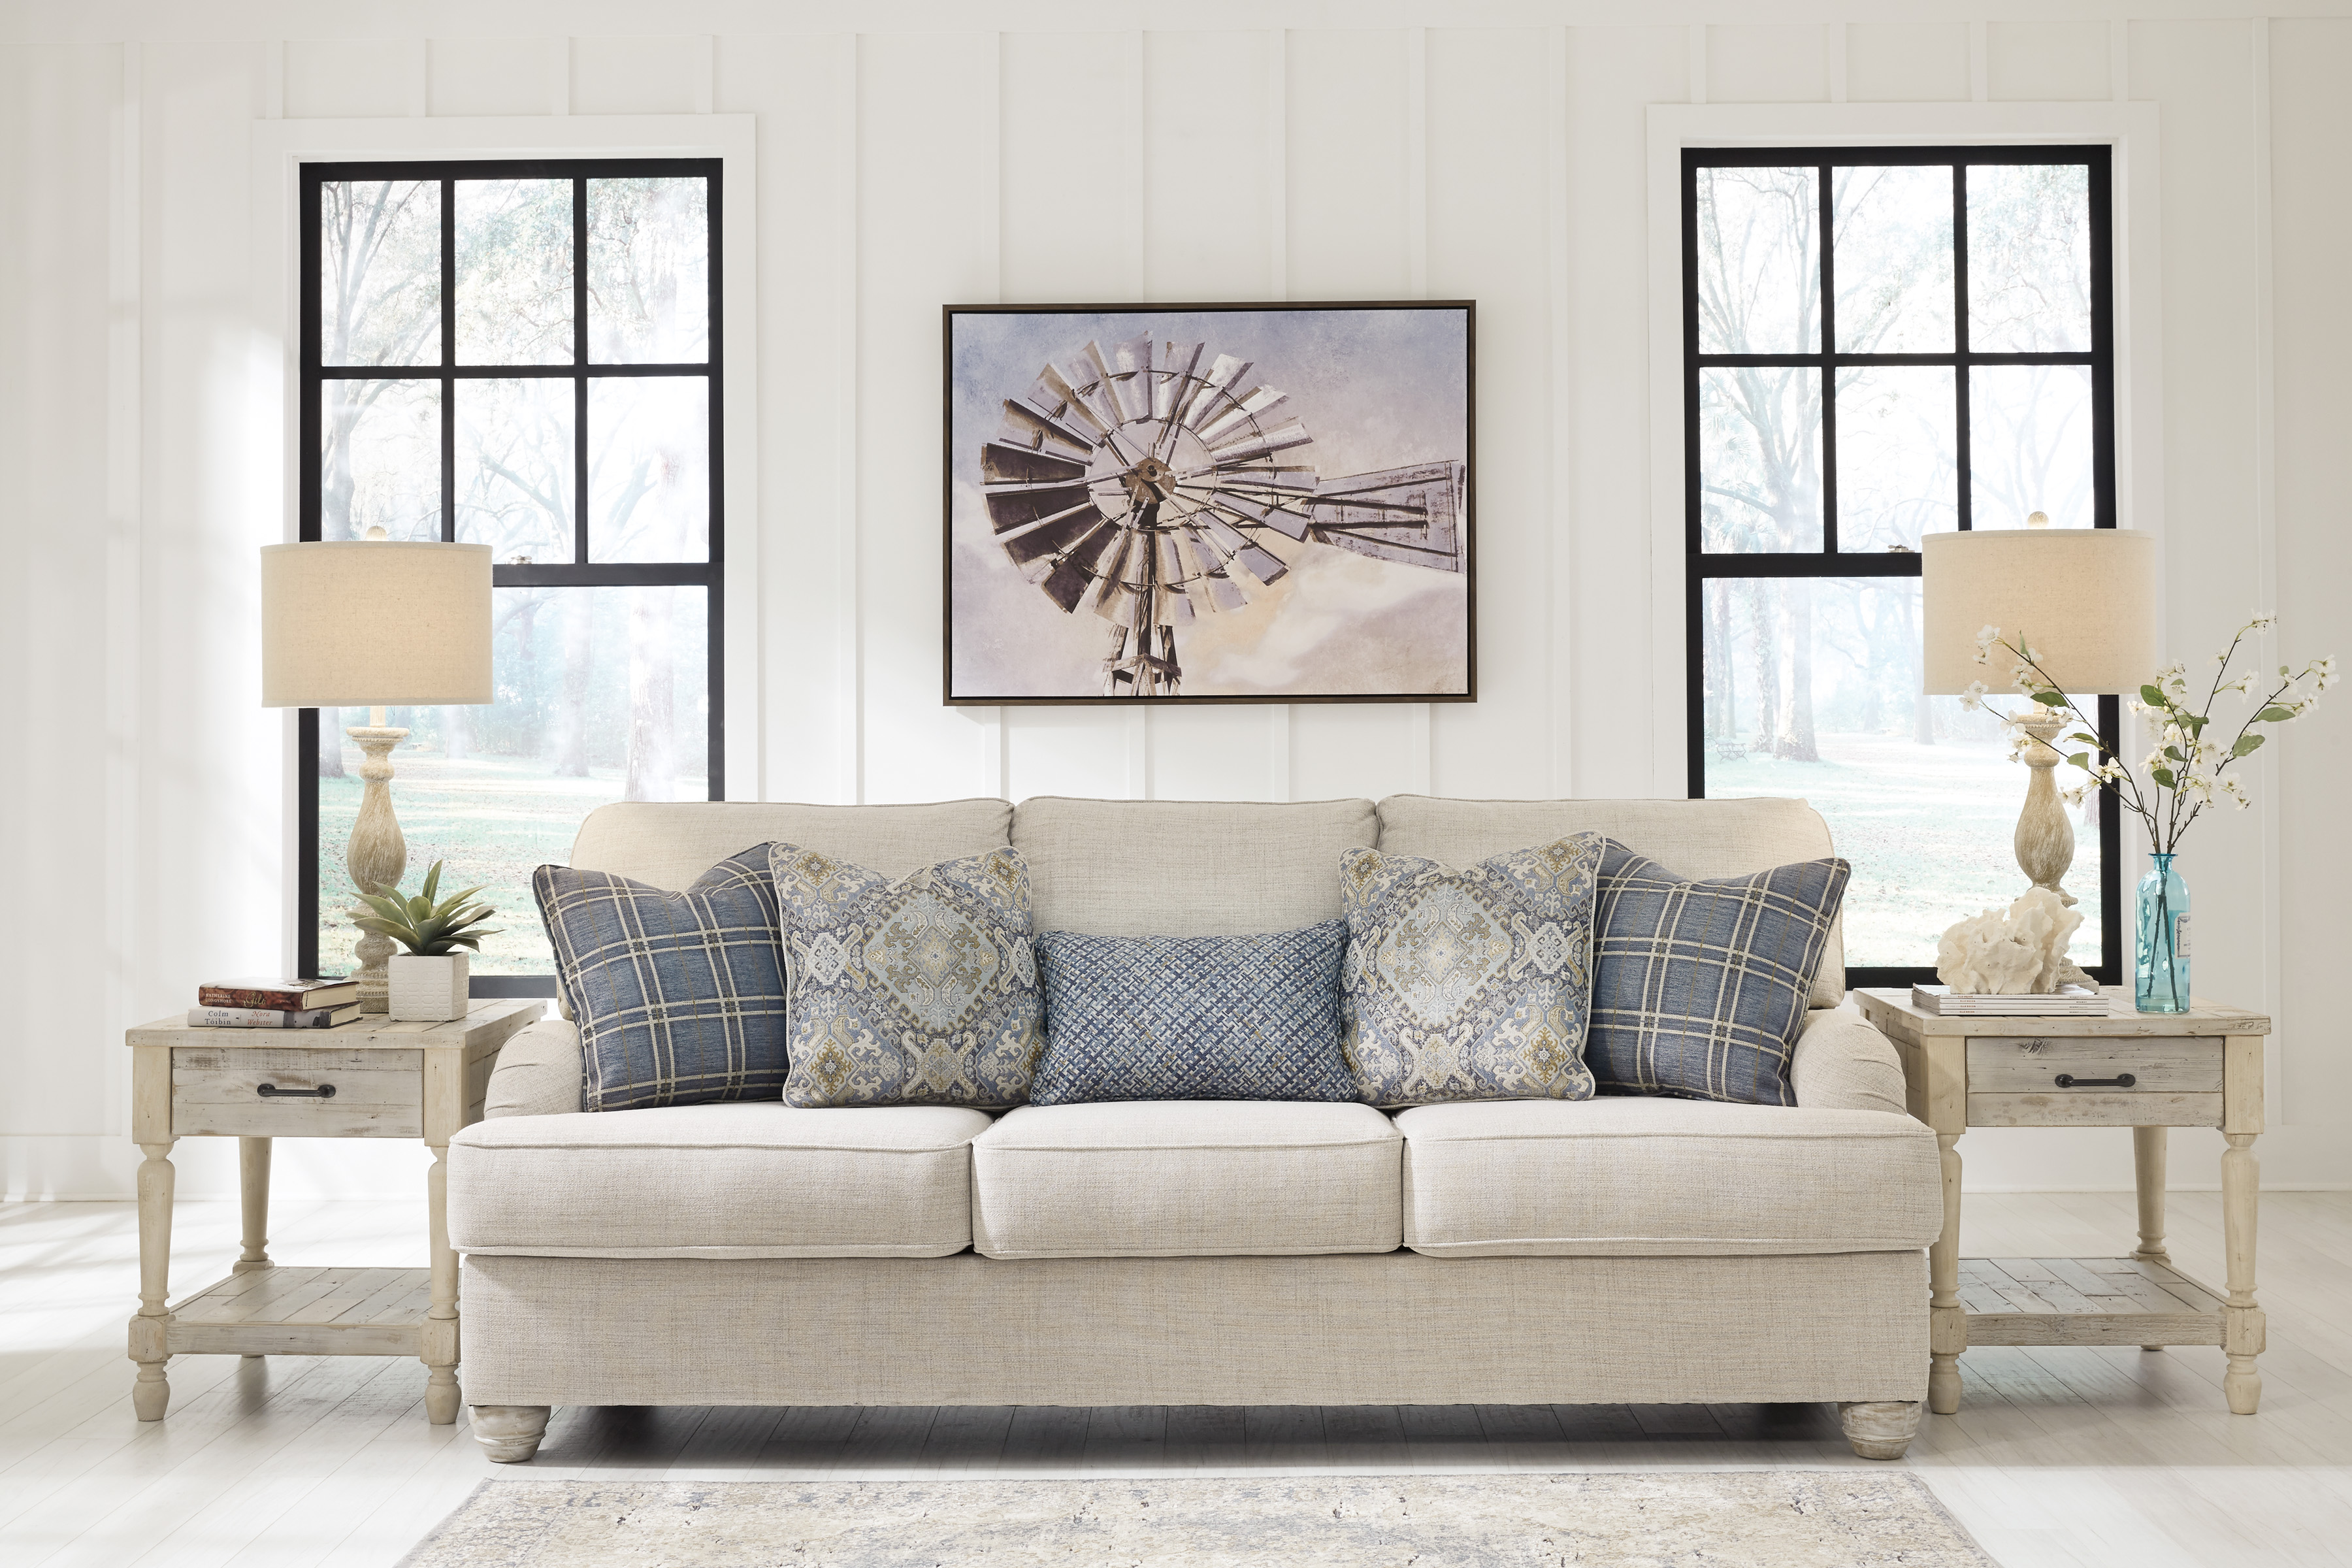 Simply Home Furniture reviews | 2220 Highway 70 SE - Hickory NC